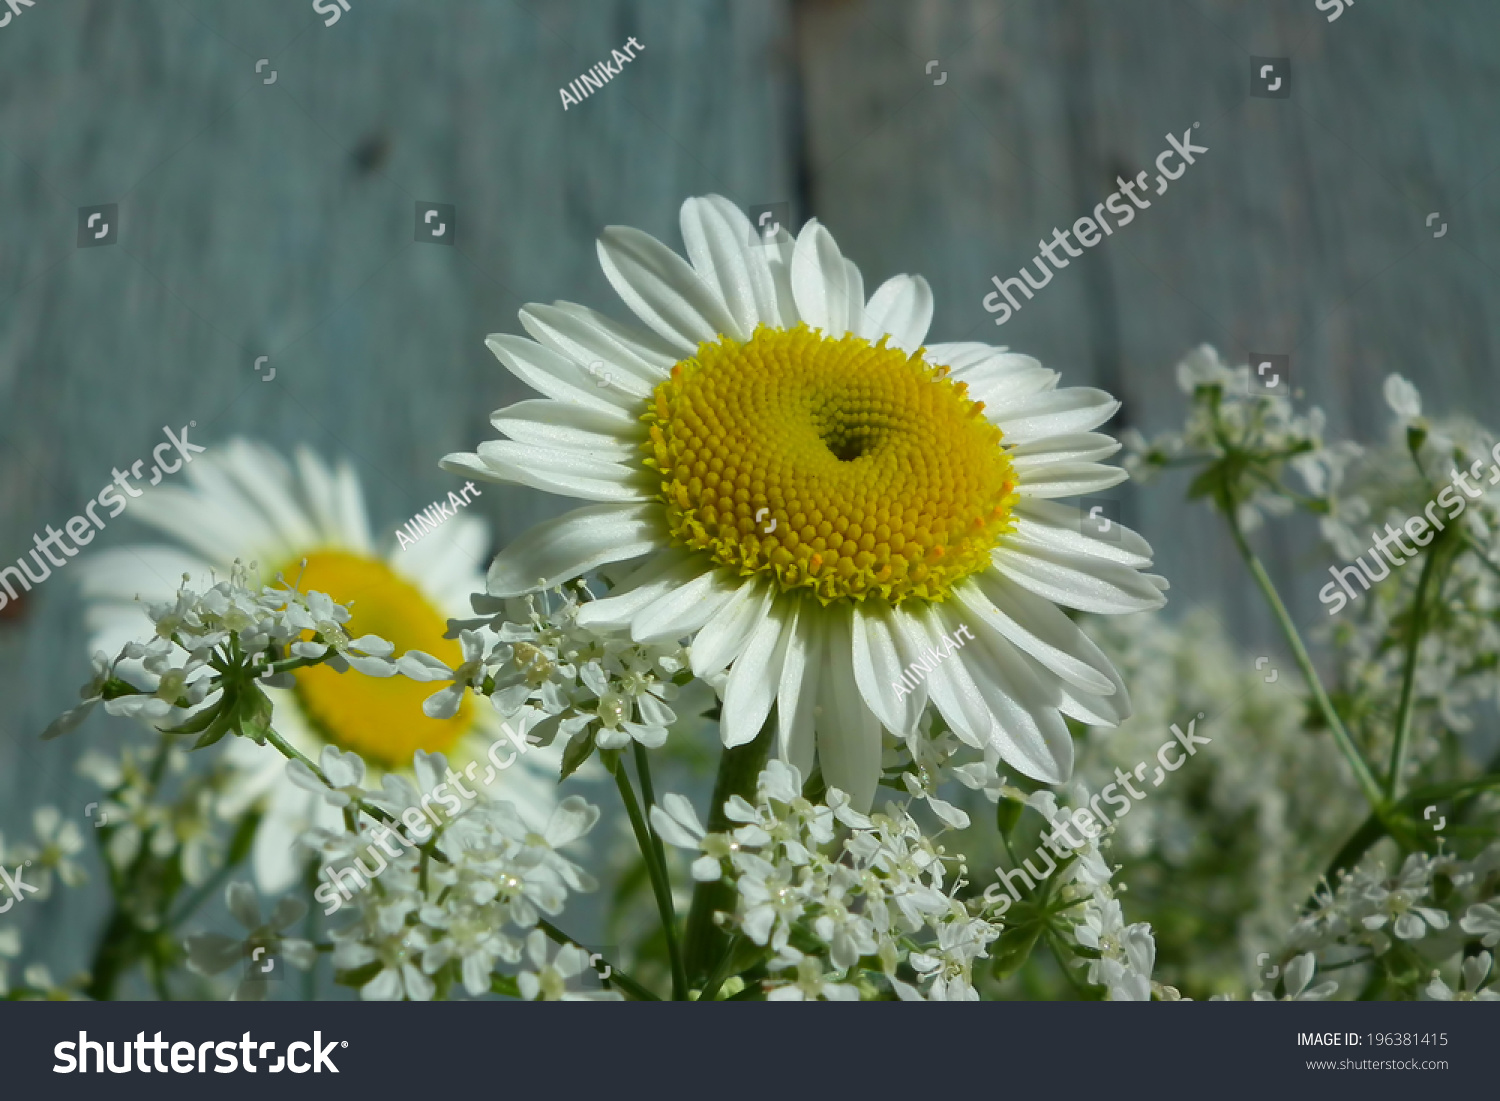 Flowers daisies bouquet wildflowers vintage floral stock photo flowers daisies bouquet wildflowers vintage floral stock photo 196381415 shutterstock izmirmasajfo